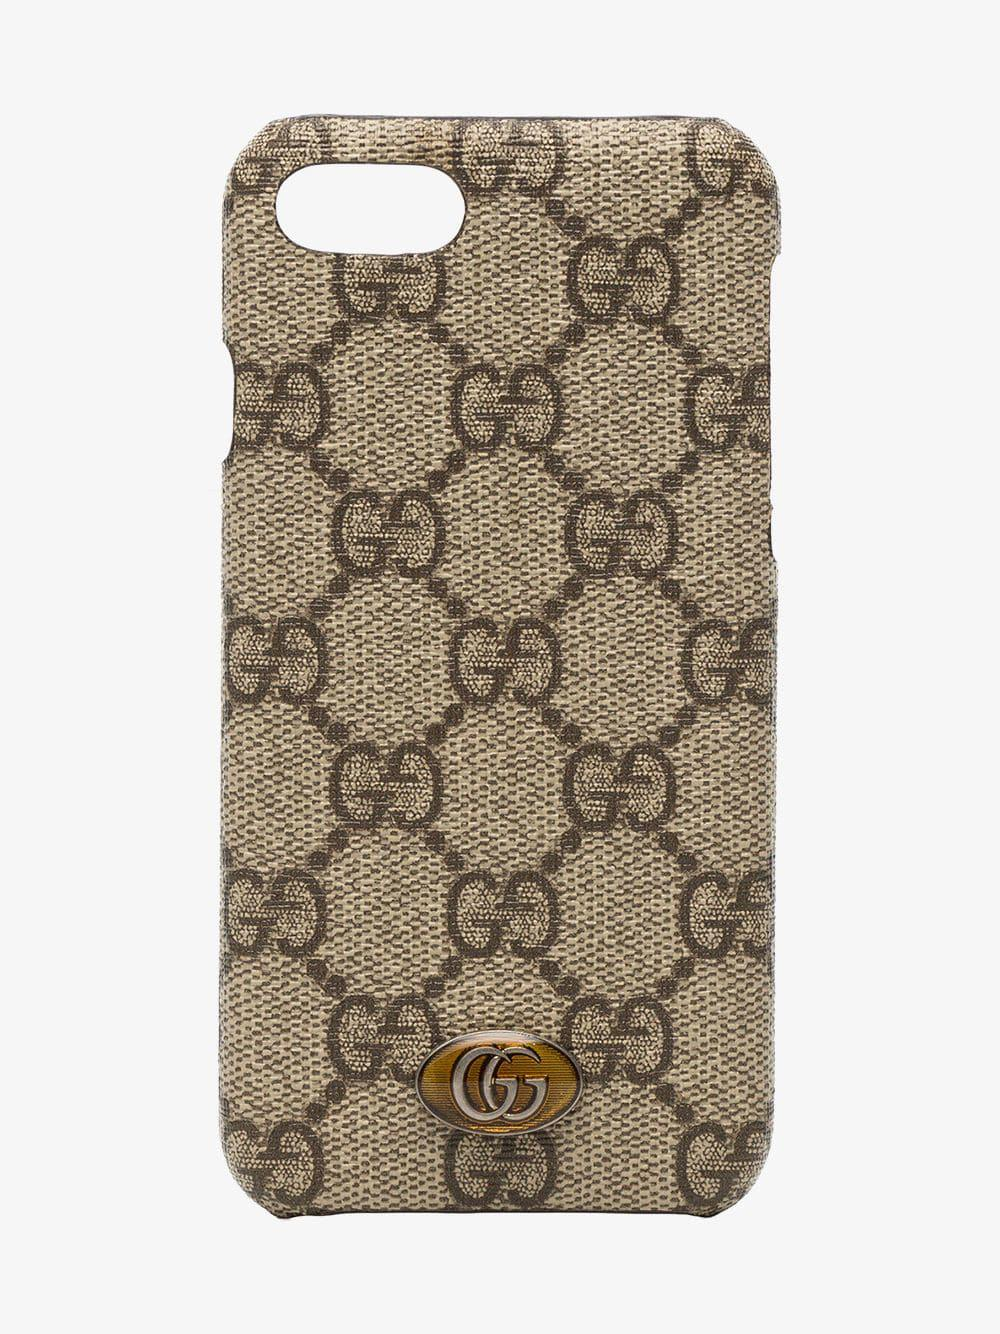 ba6caa124bbcfd Gucci Ophidia Iphone 8 Case in Brown - Lyst